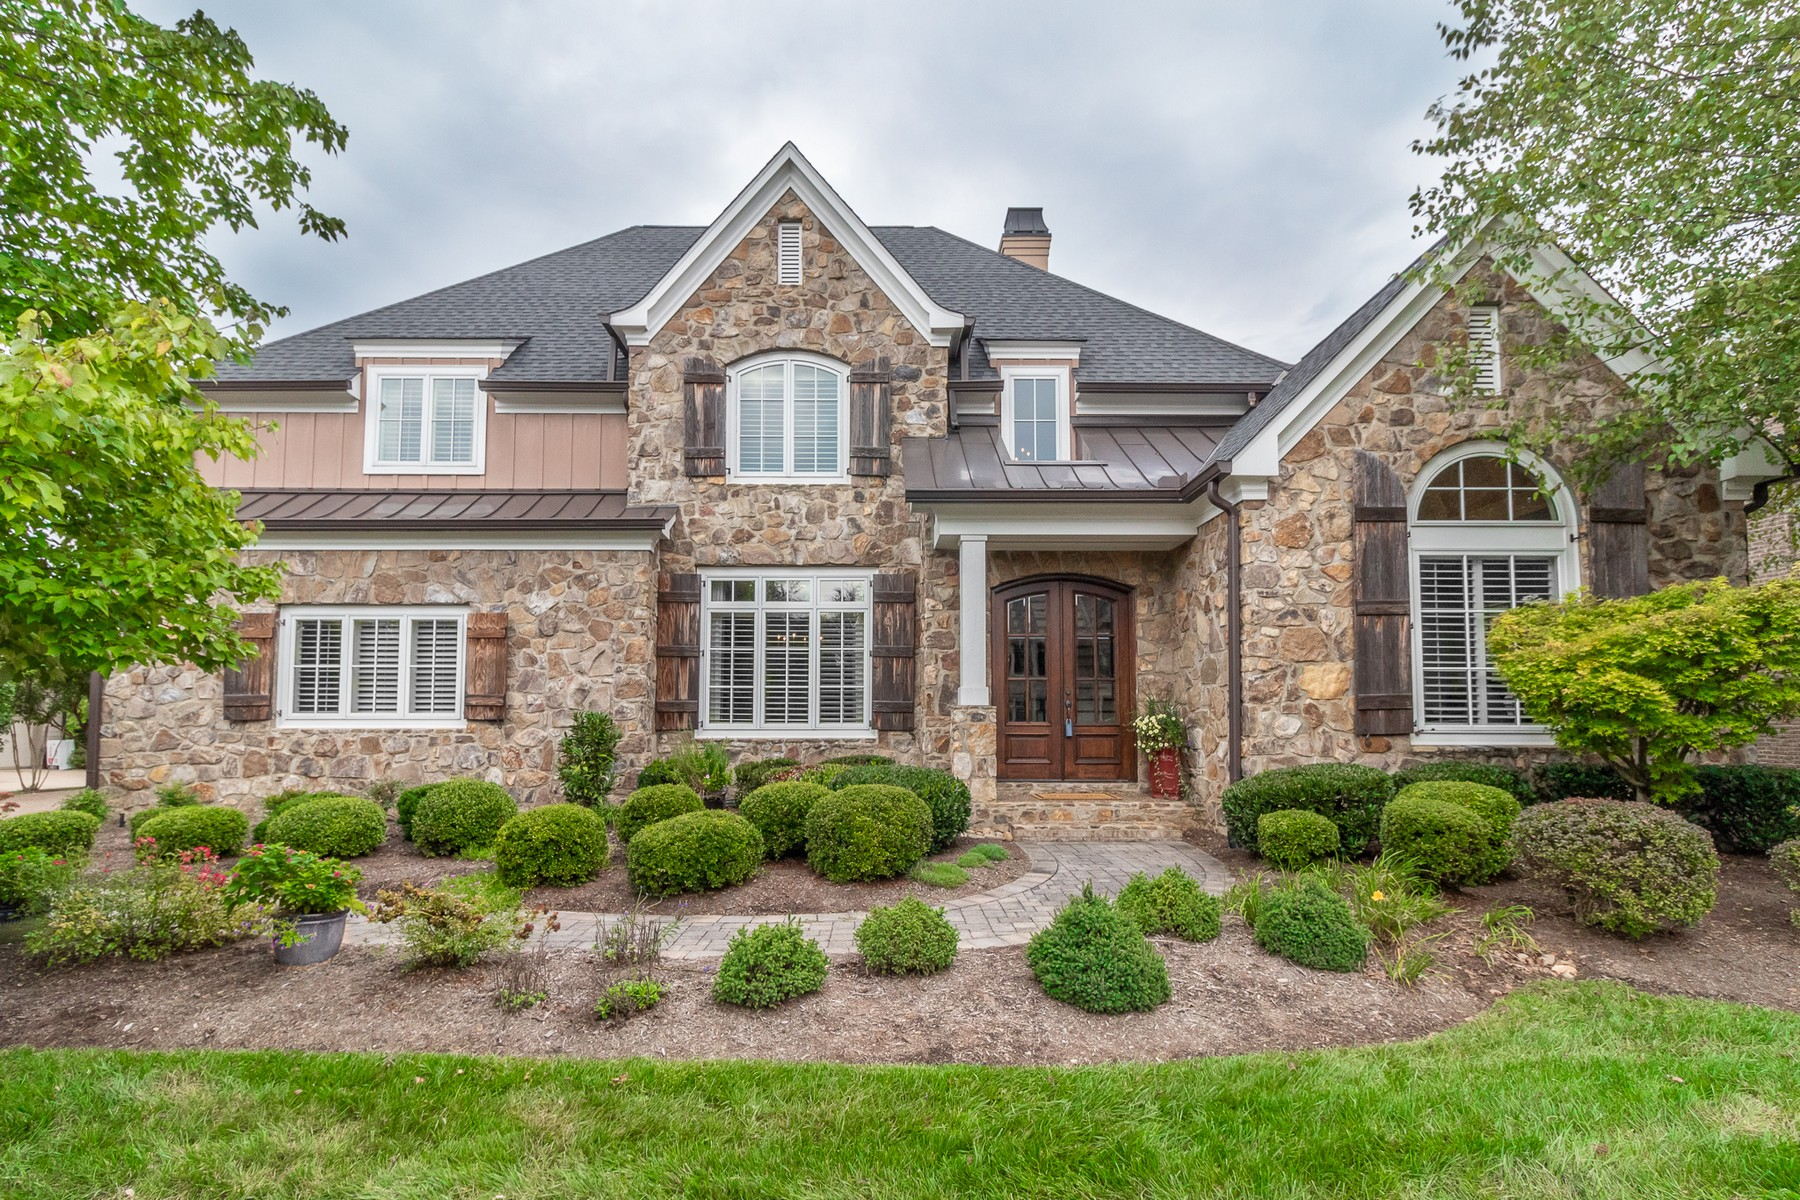 Single Family Home for Sale at Sophisticated Elegance 1110 Anthem View Way Knoxville, Tennessee 37922 United States